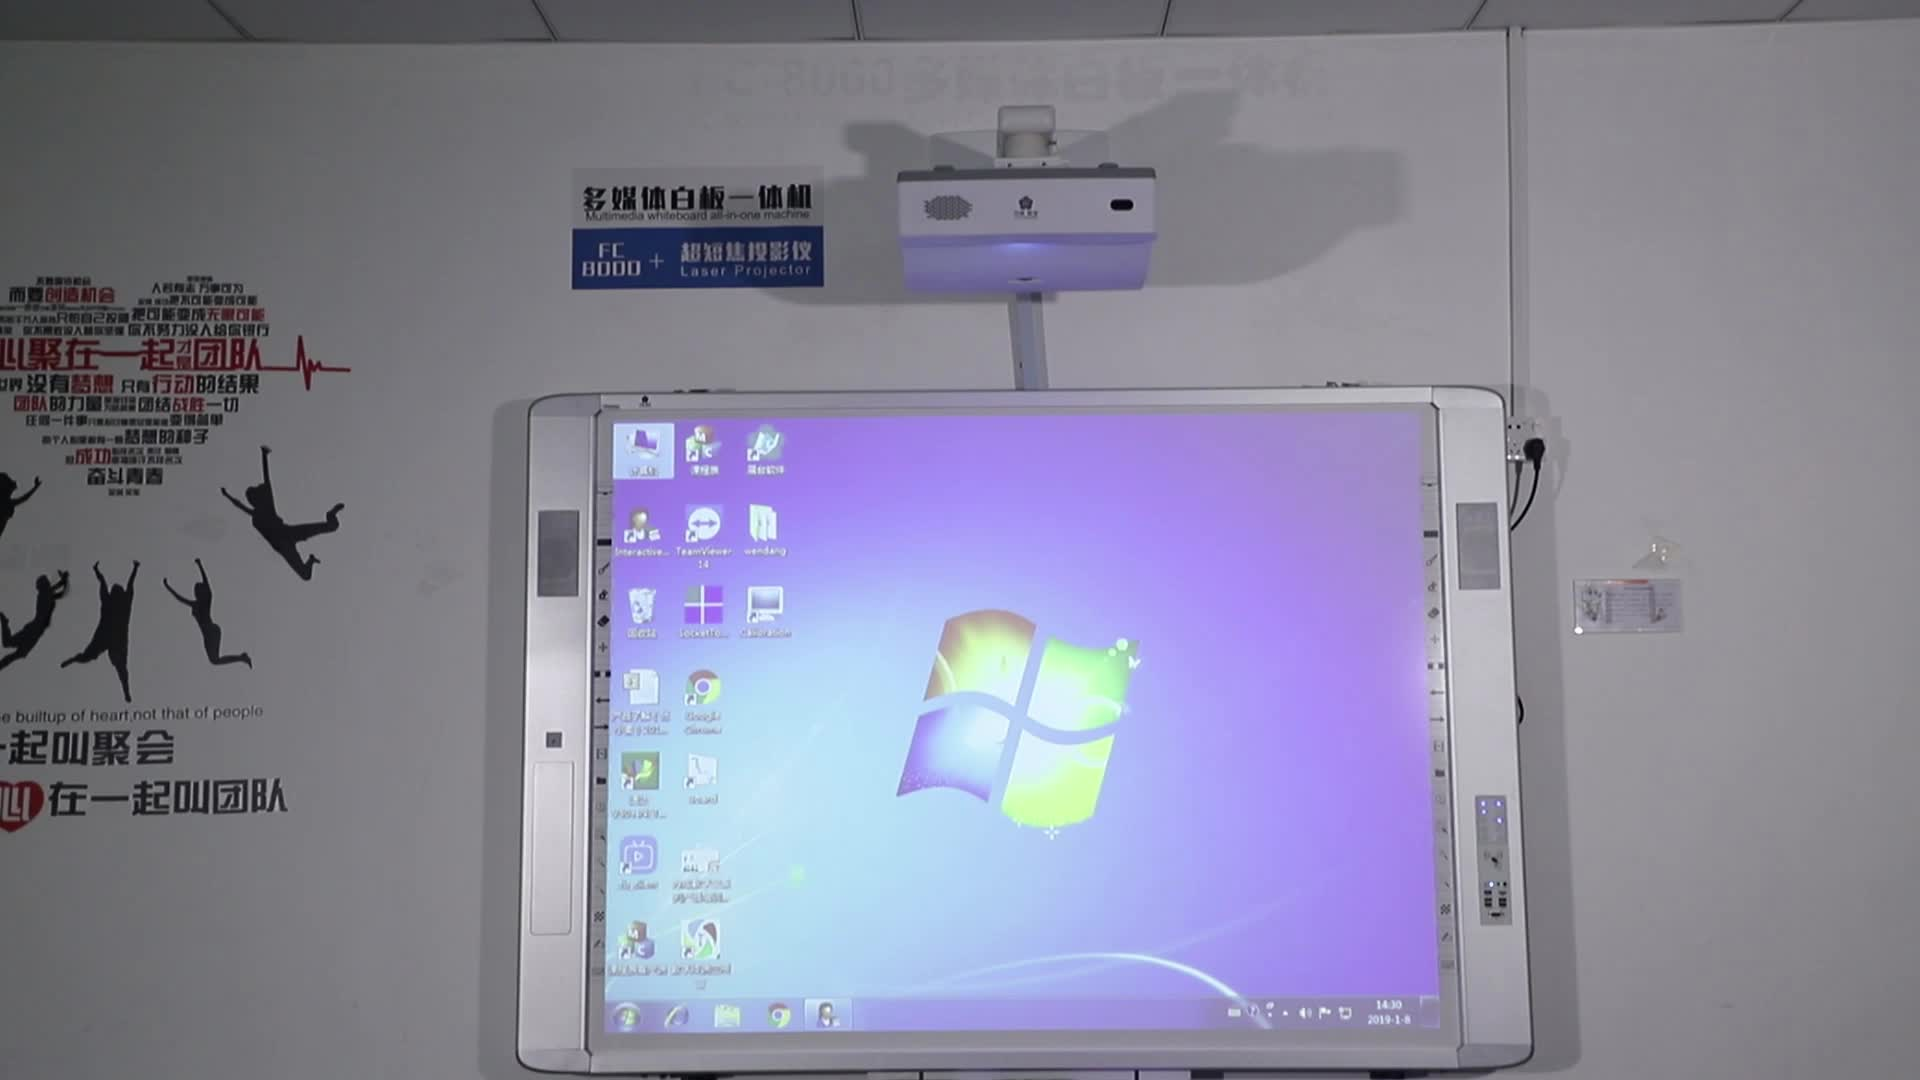 Advanced Integrated Projector All in One Projector Interactive Drawing Whiteboard 82 Inch with Built-in PC